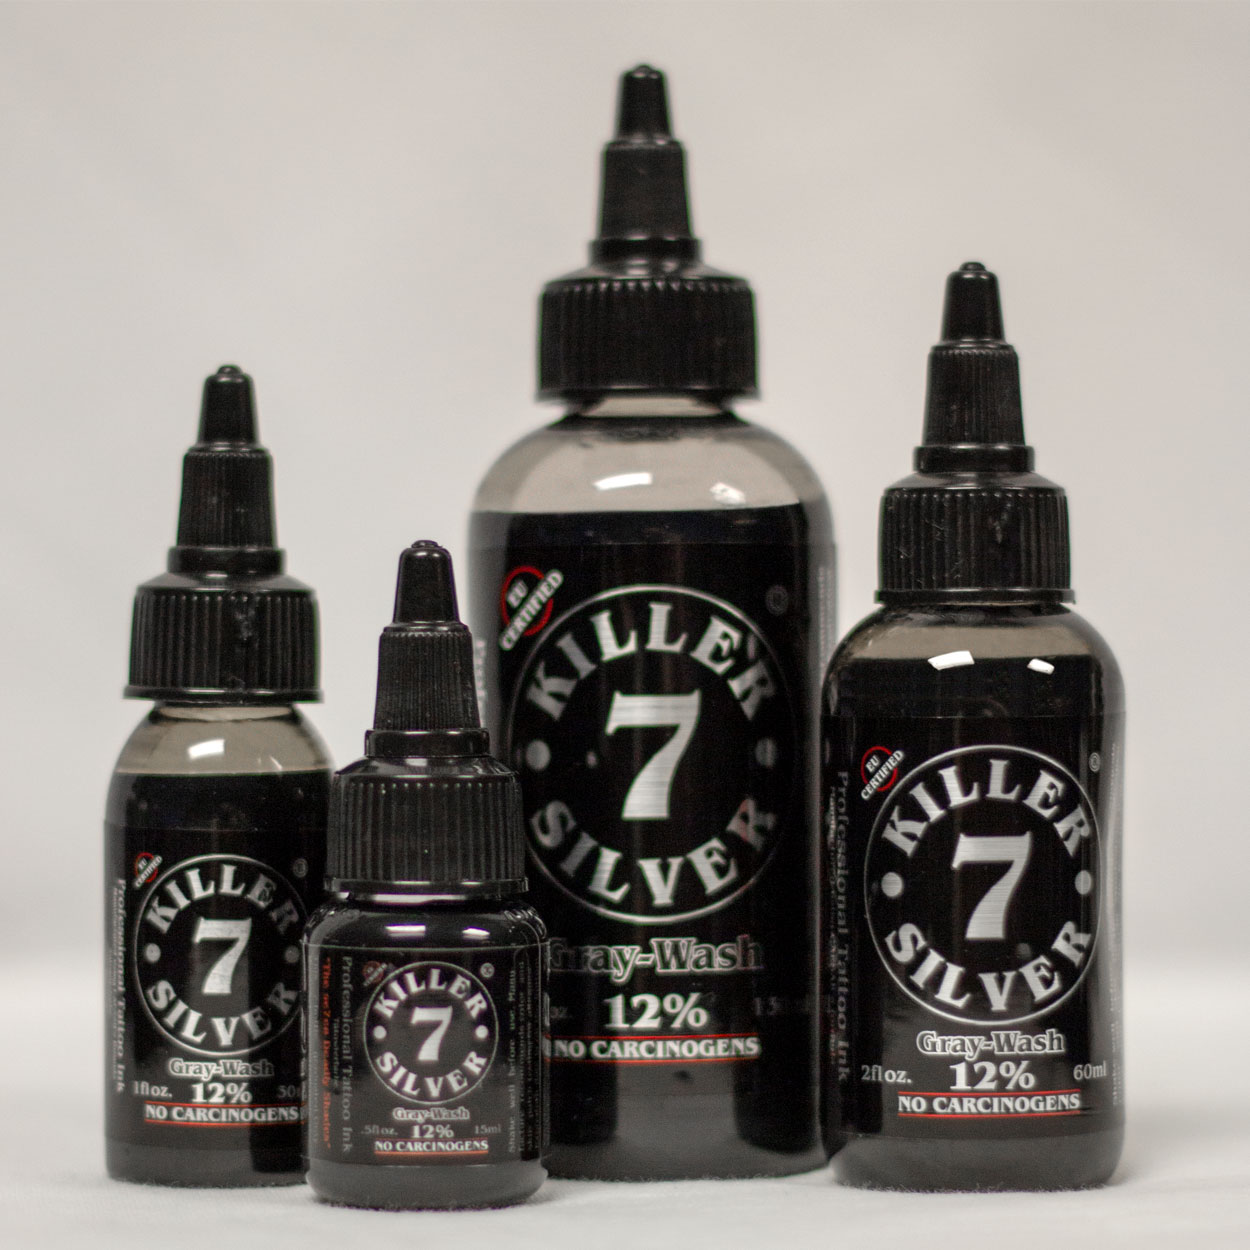 Killer Silver-Gray Wash 12%-Tattoo Ink-4 sizes-Steel Gray Silver